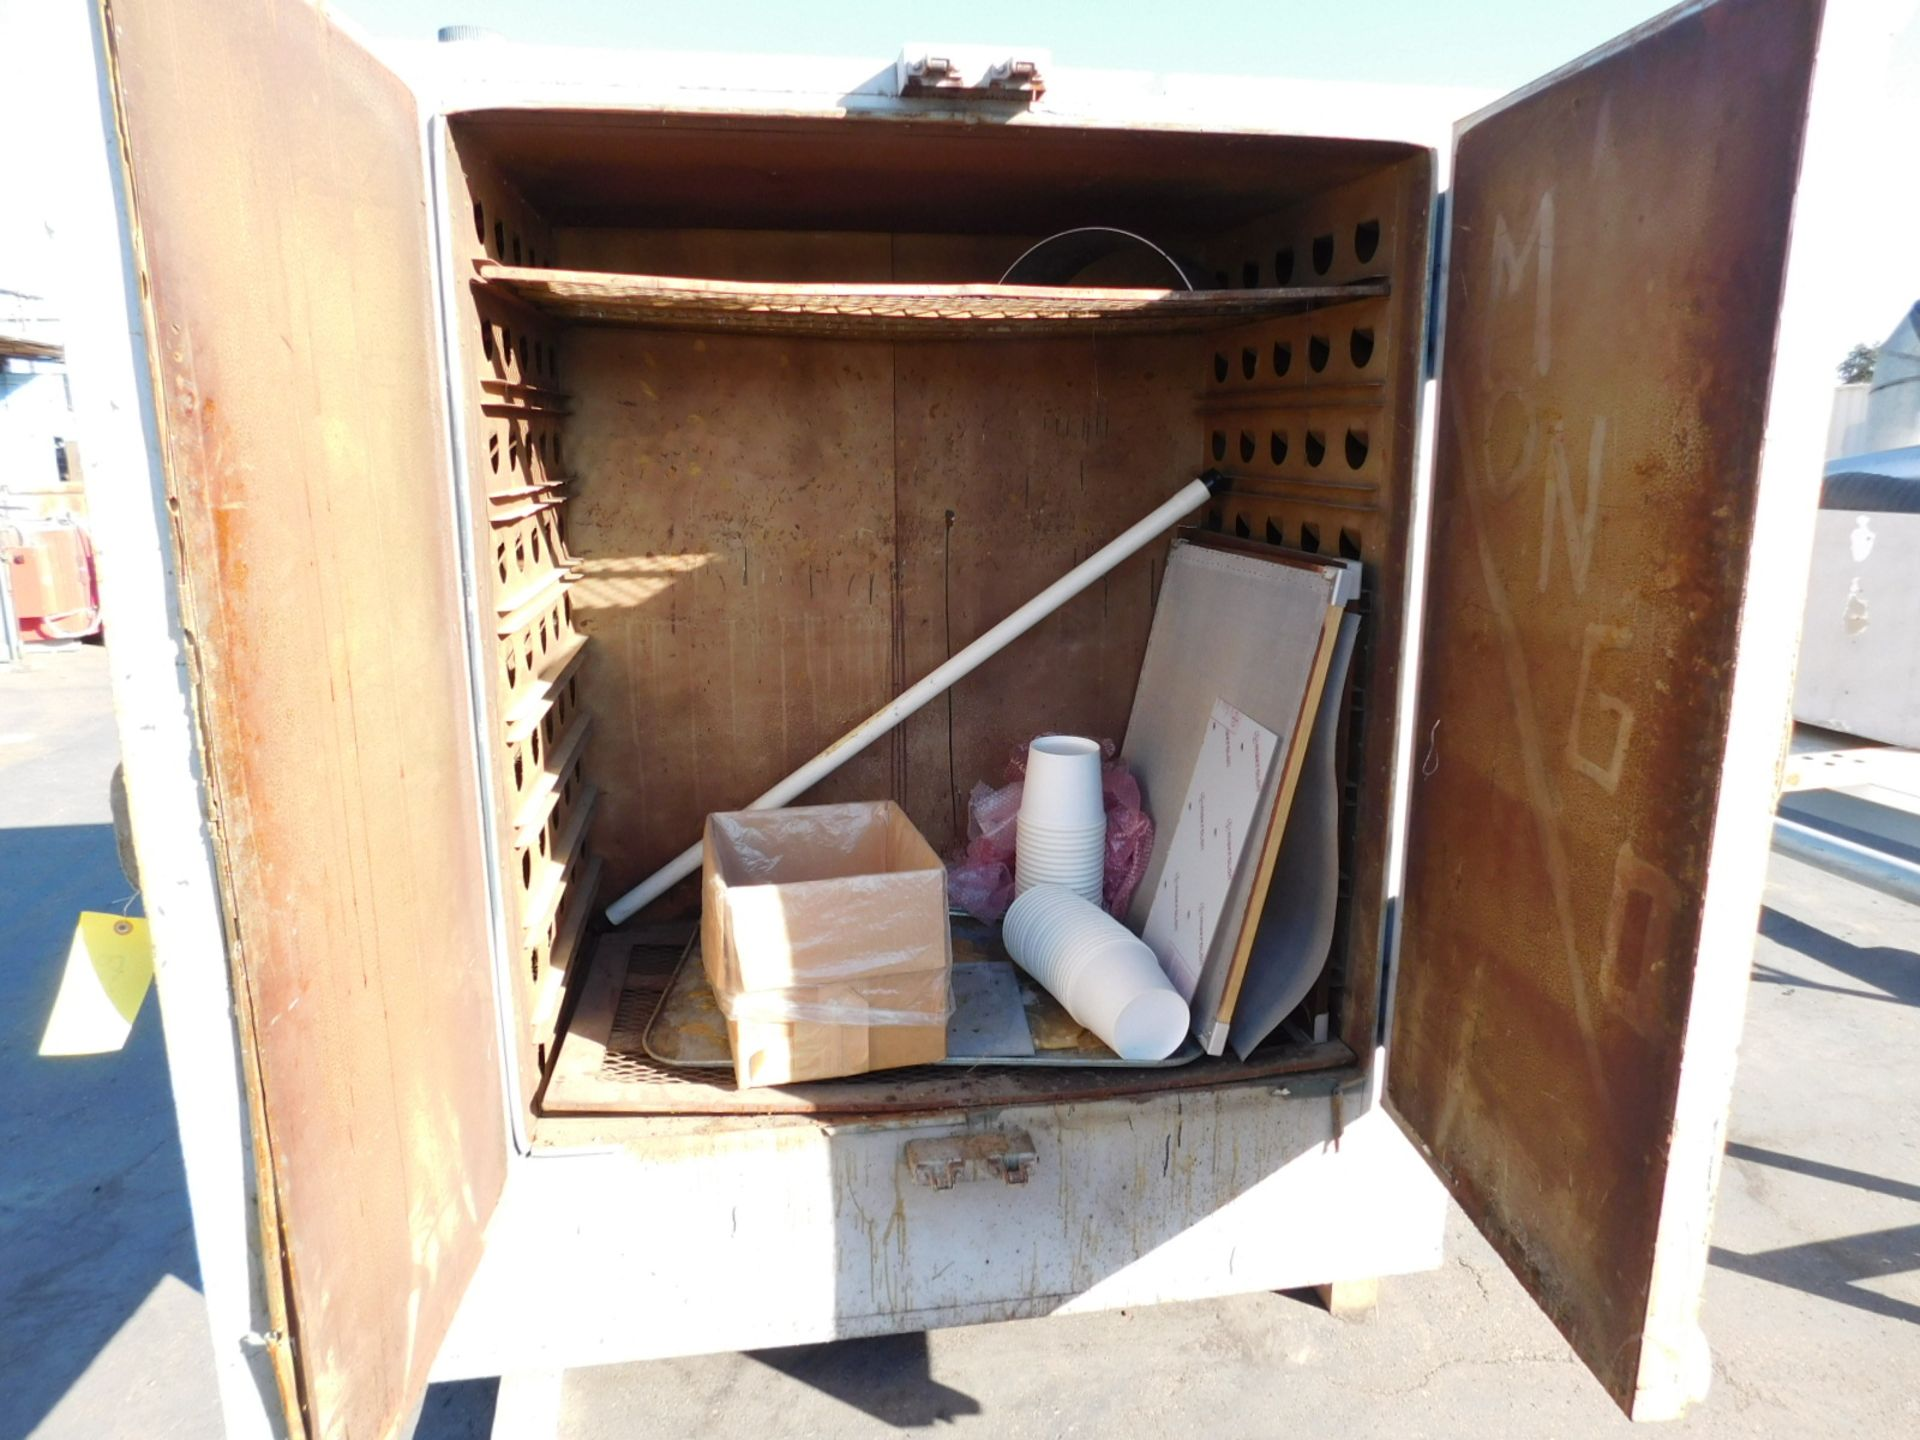 Lot 23 - GRIEVE MODEL SA-350 OVEN, ELECTRIC, 350°F, S/N 47441, OUT OF SERVICE